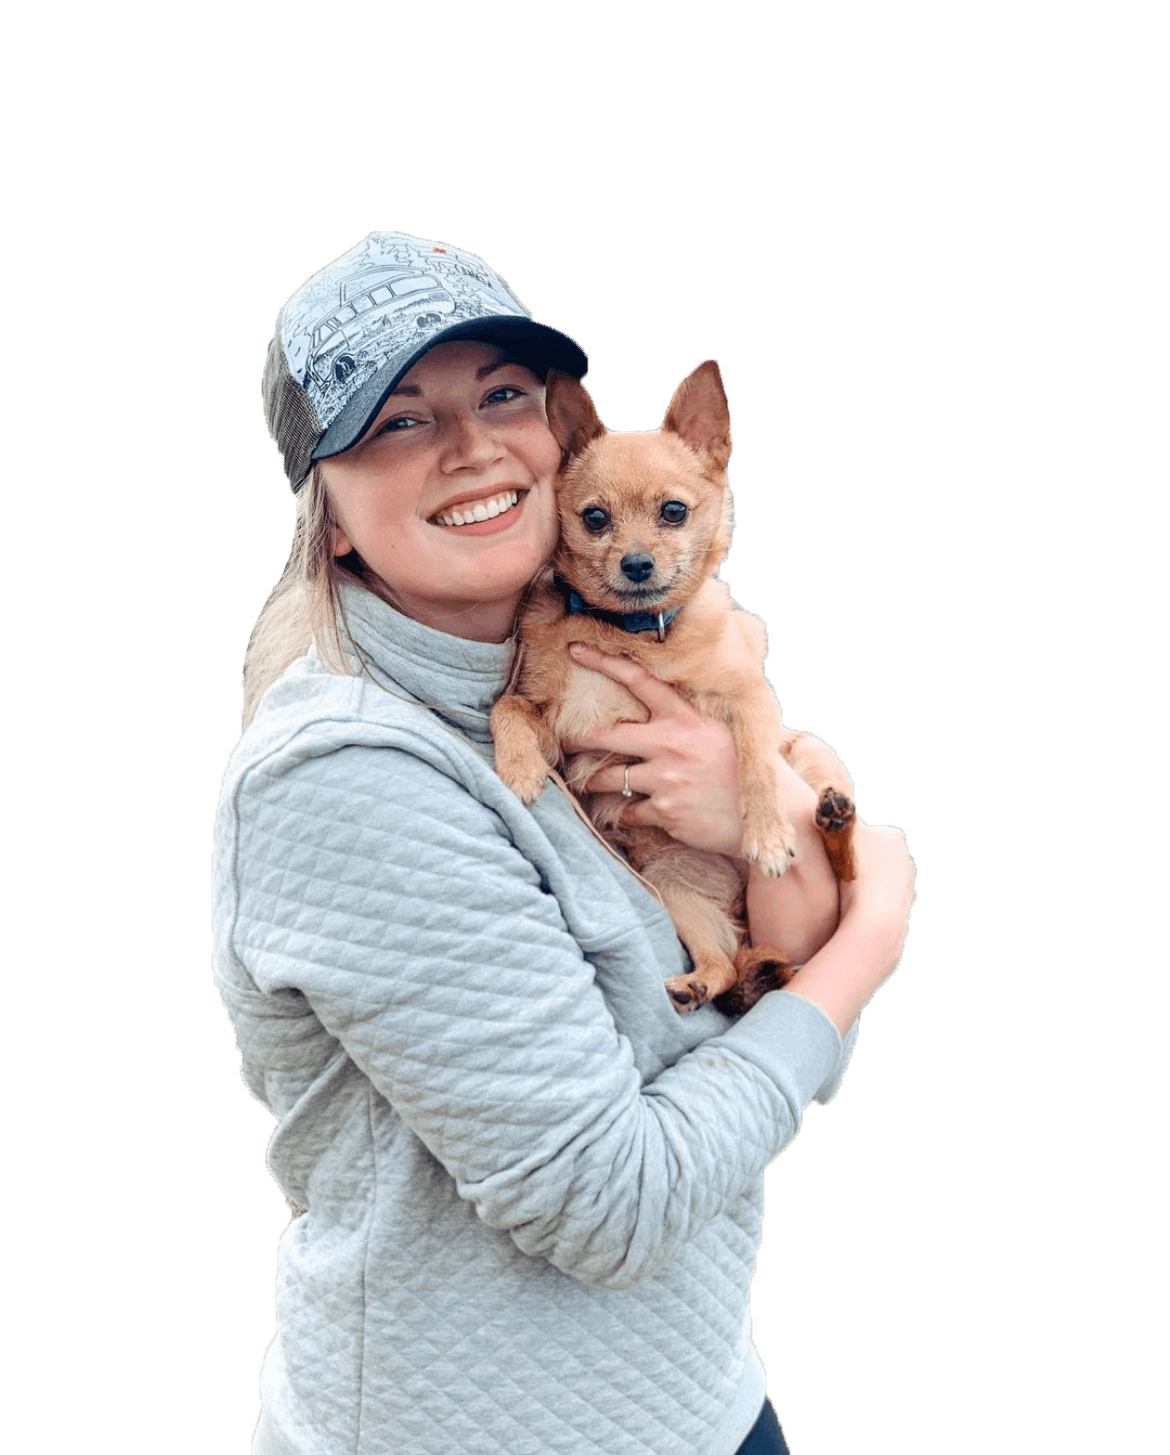 Dedra - Your Local Dog Walker From Victoria